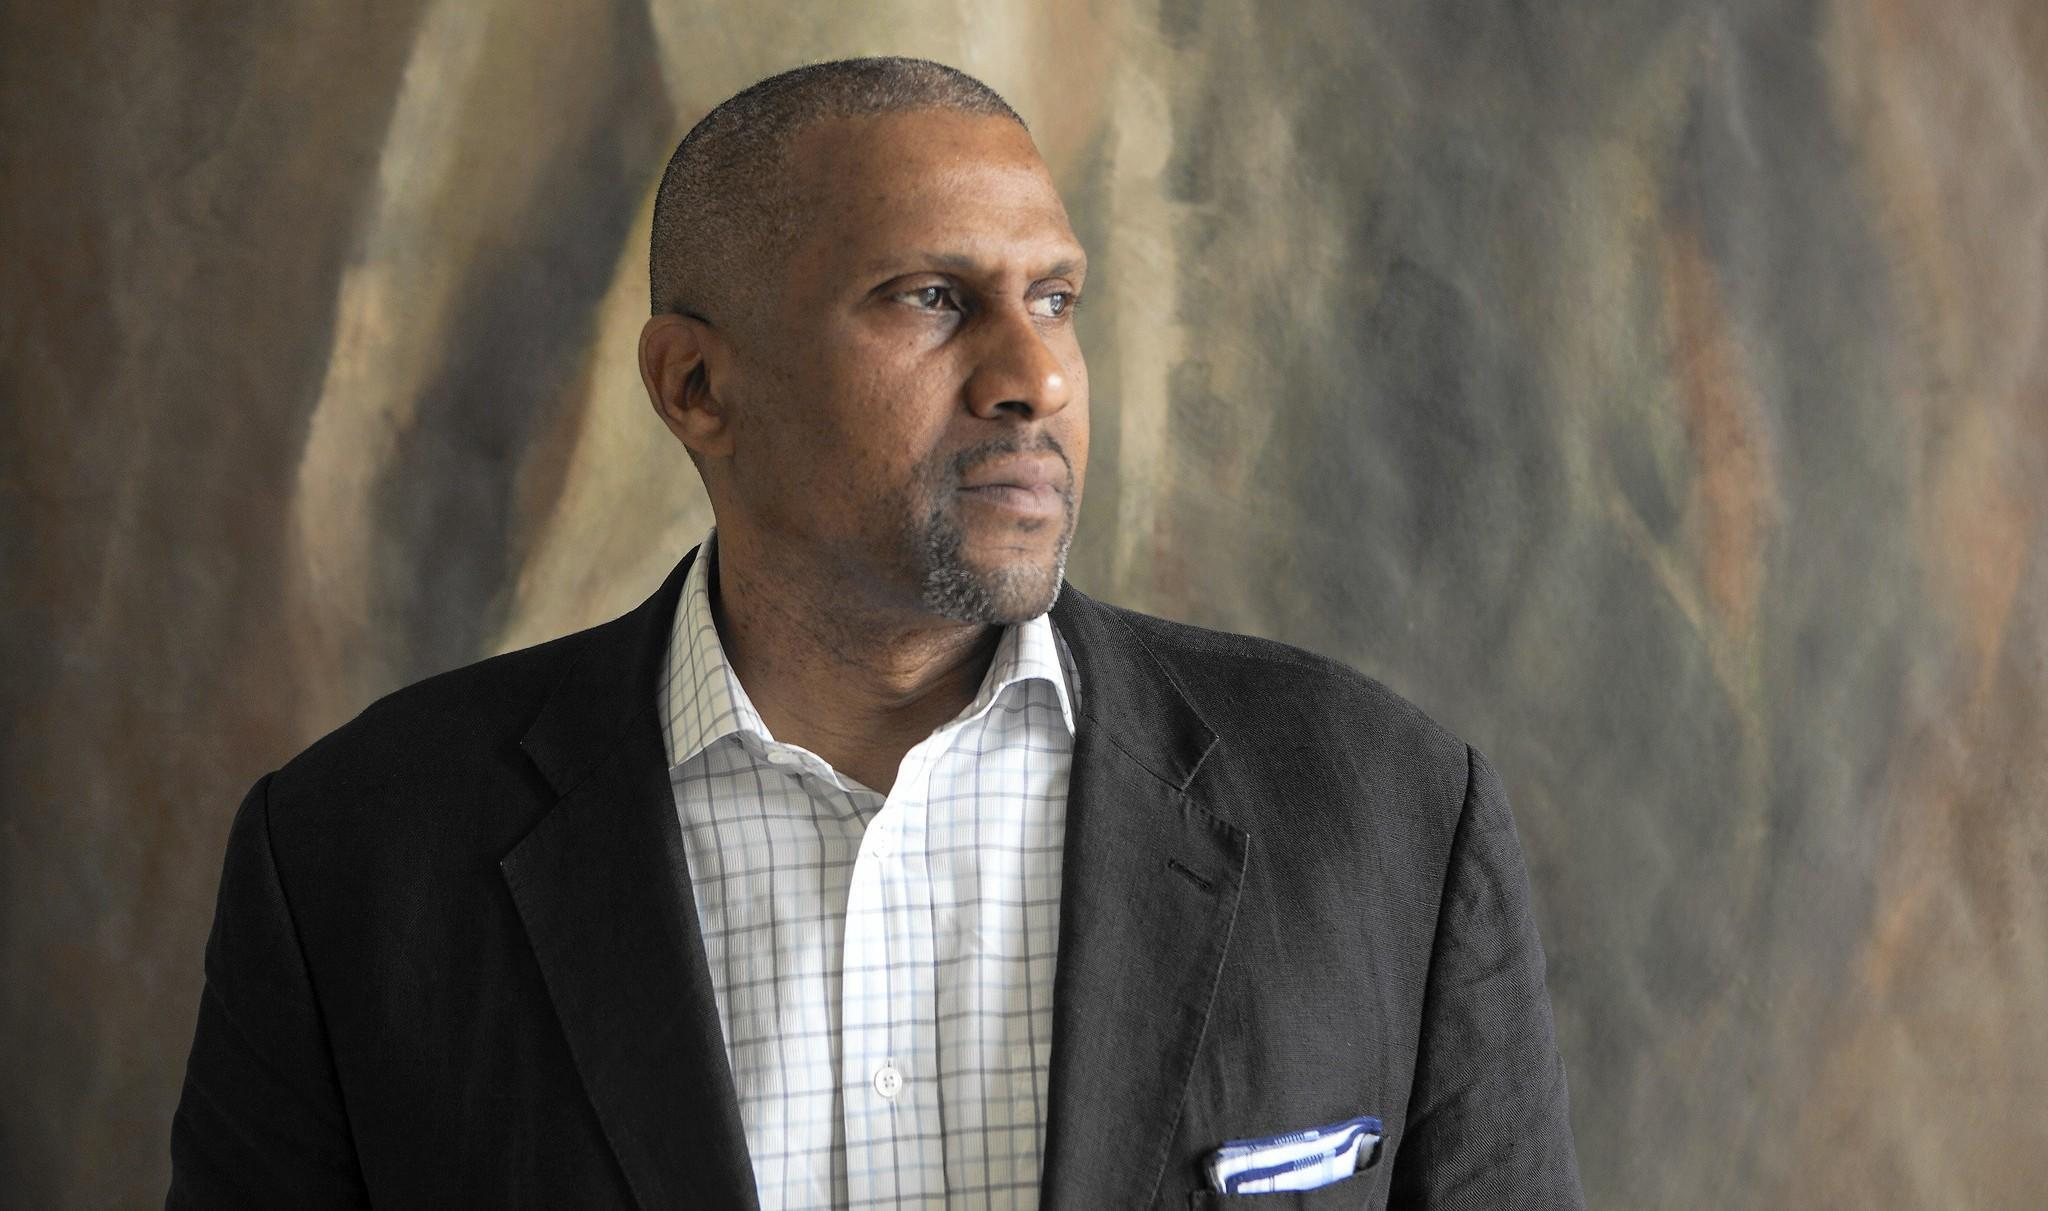 Tavis Smiley vows to fight back against sexual misconduct allegations